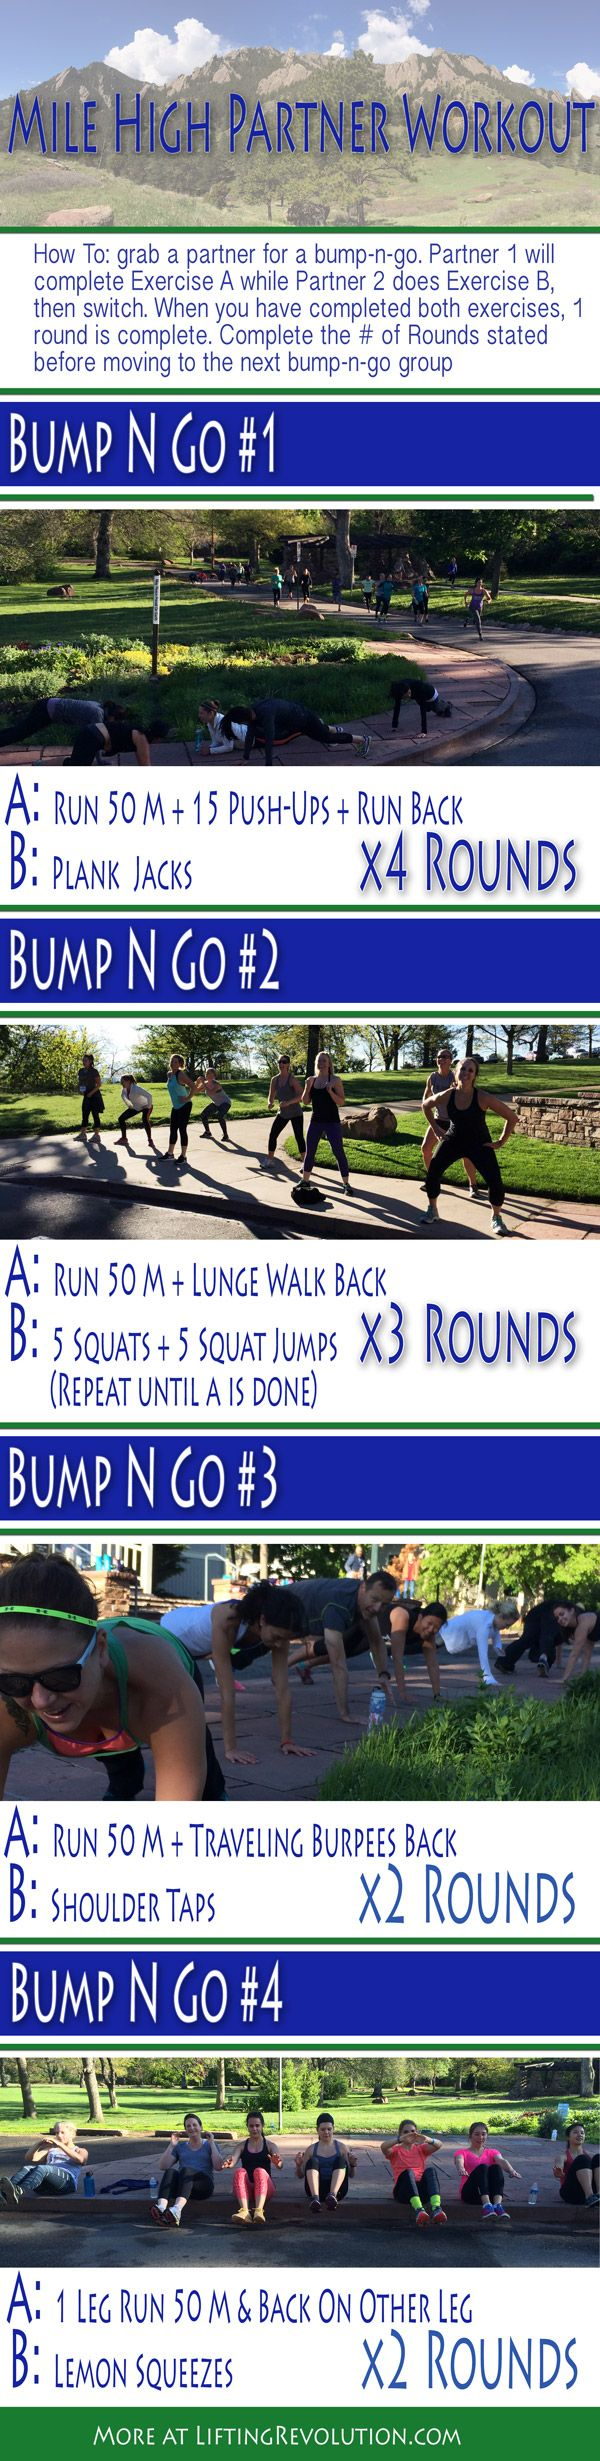 Fun partner or boot camp workout no equipment #workout #bootcamp